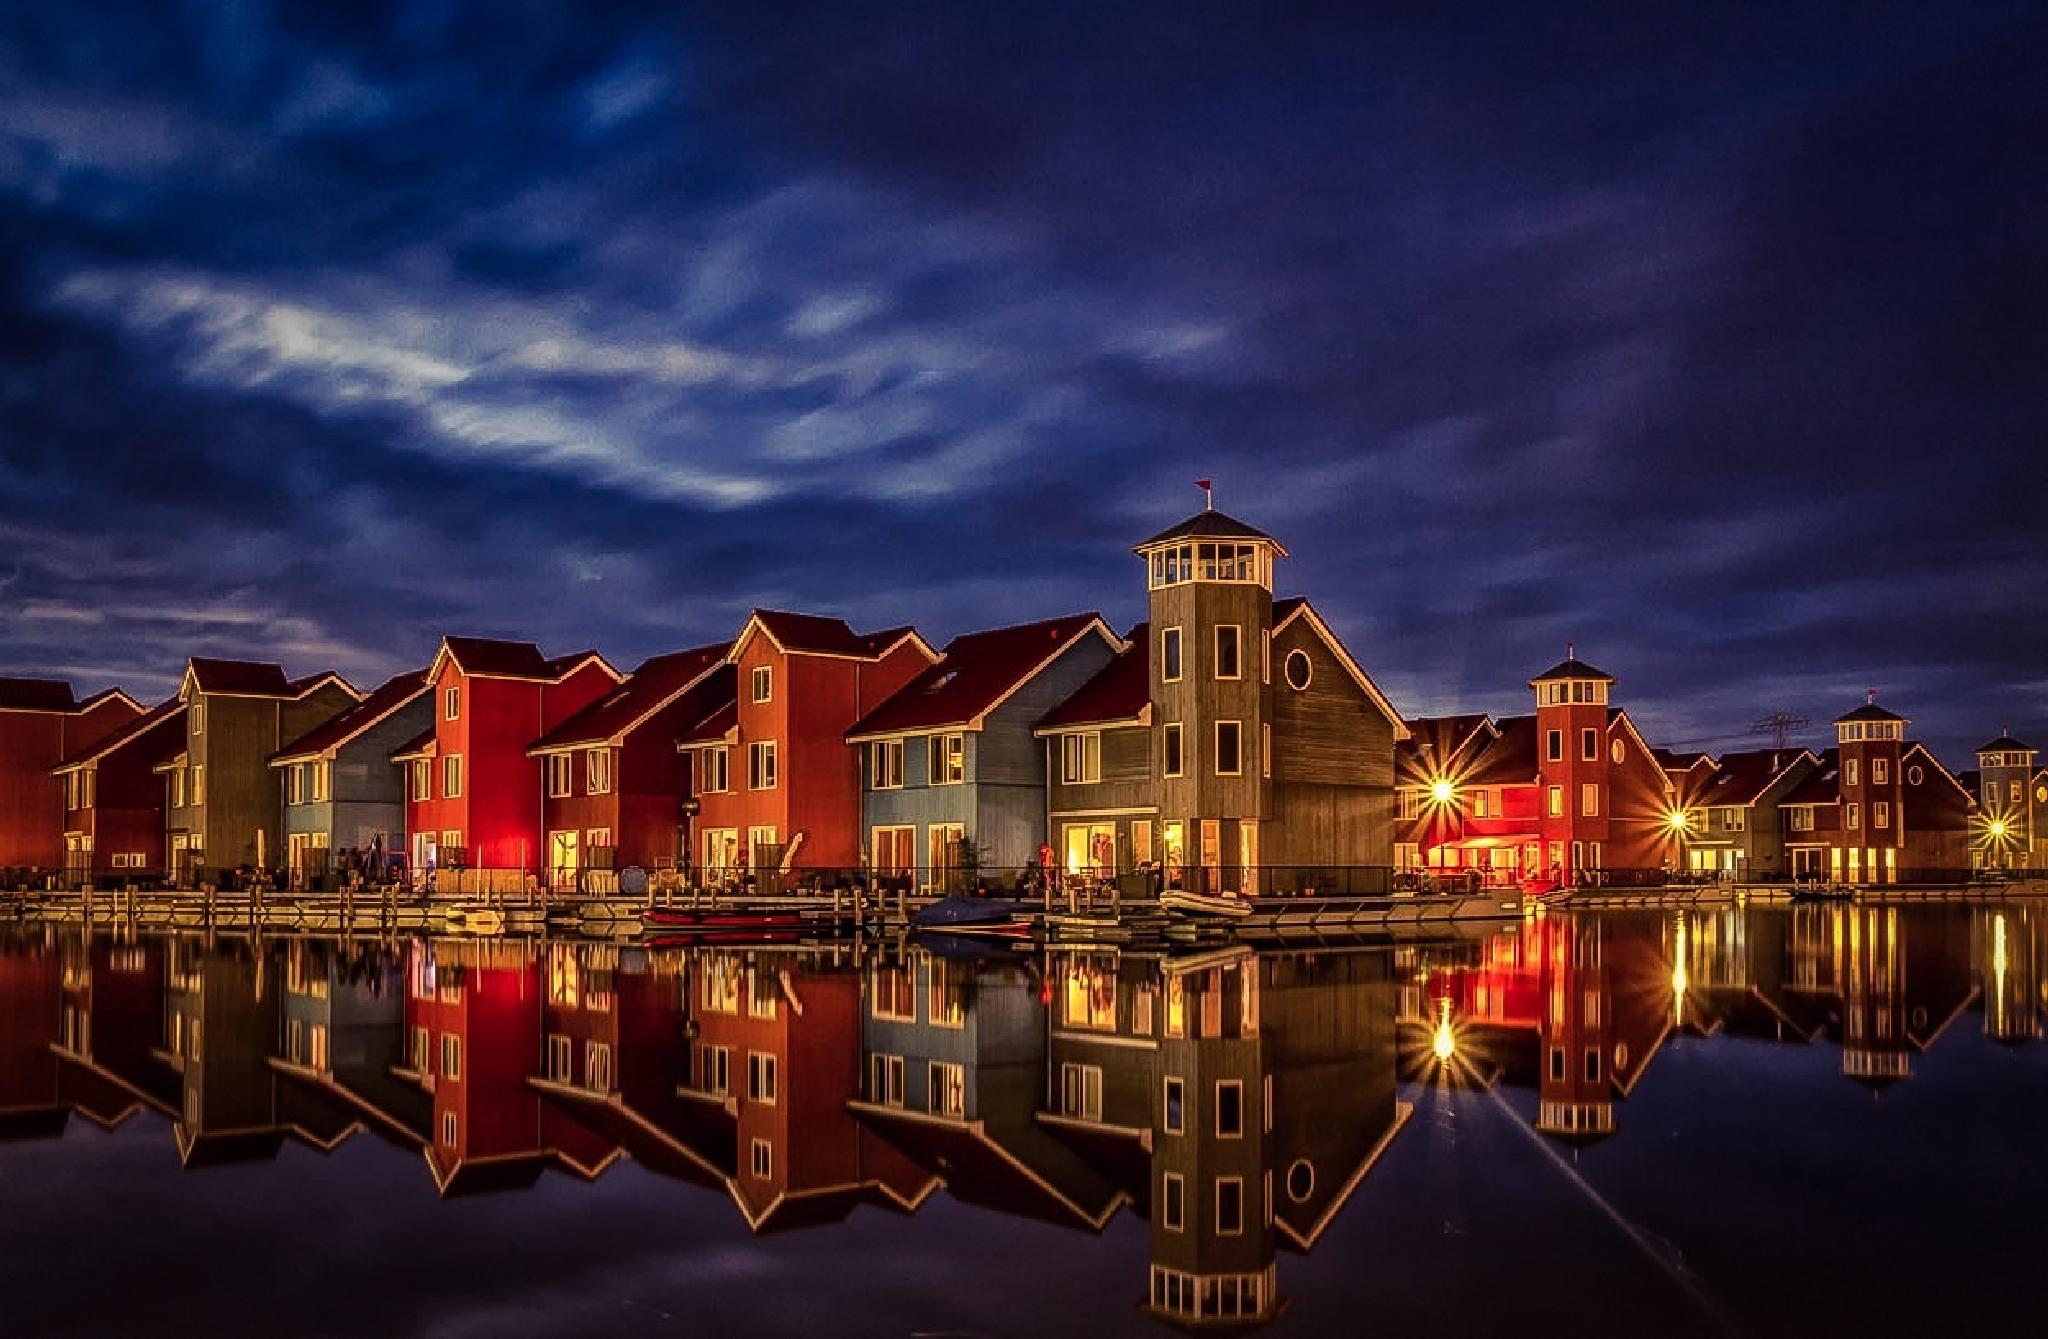 Reflections by ptesta